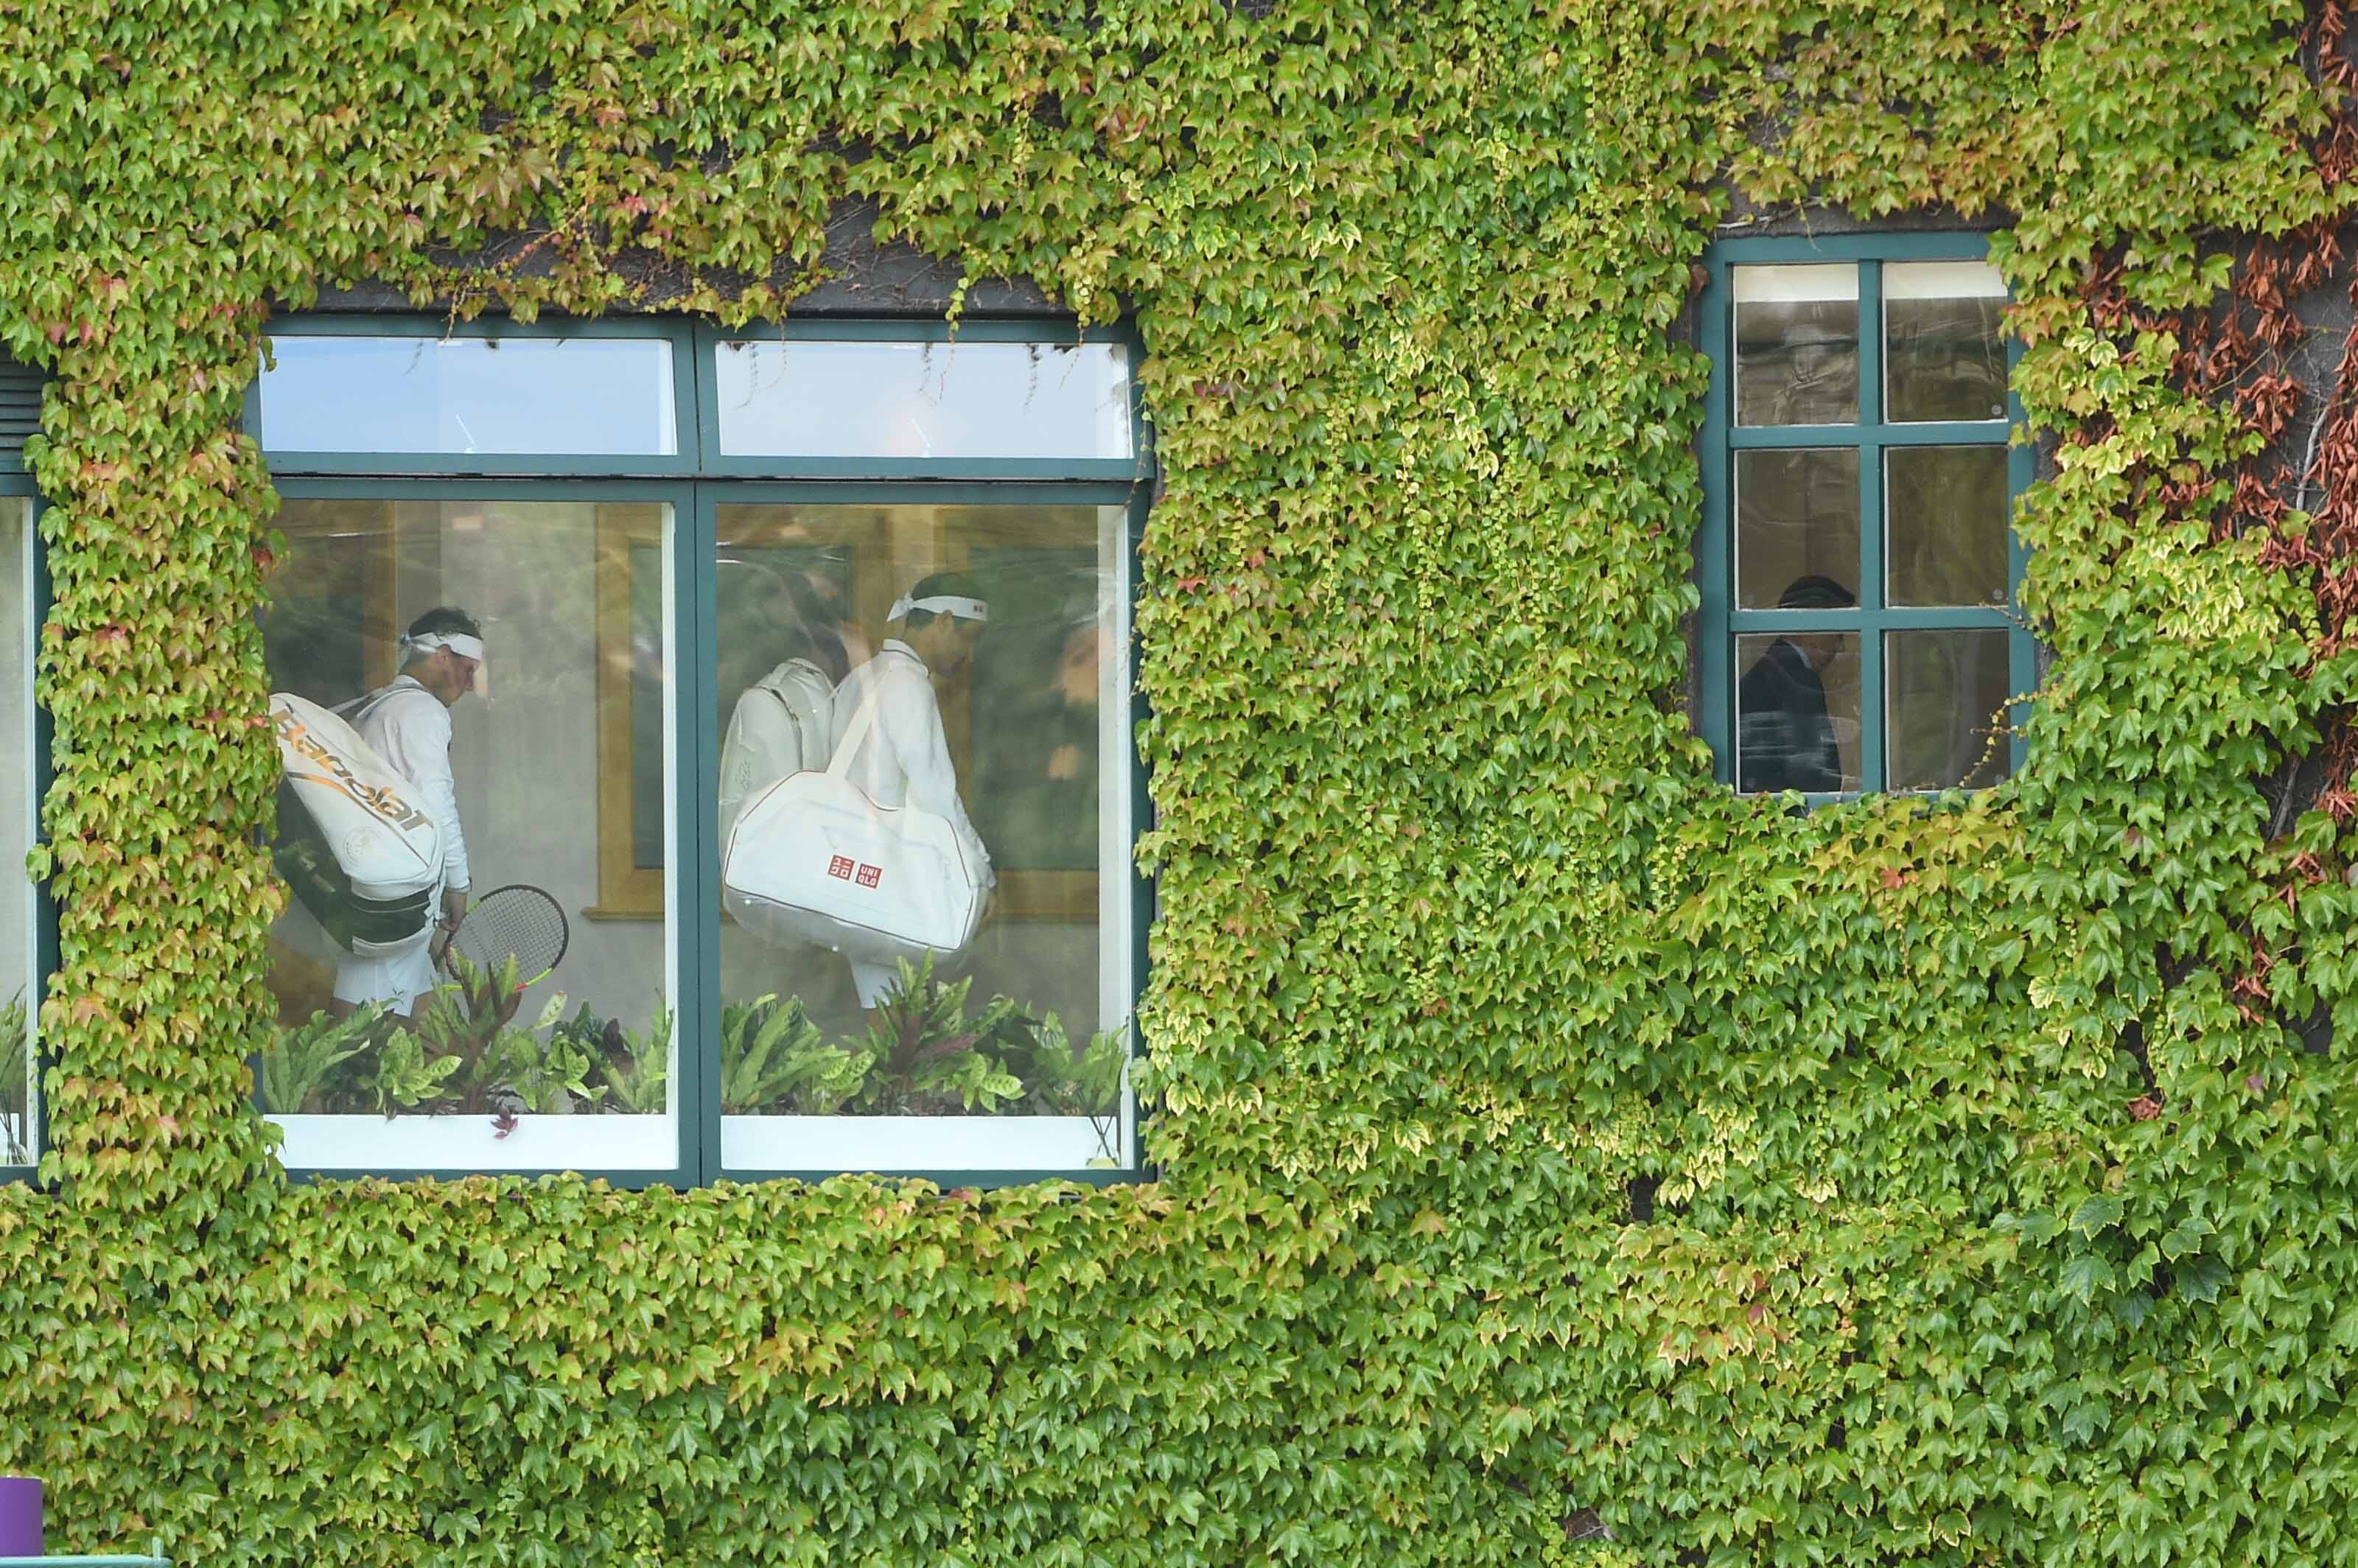 Roger Federer and Rafael Nadal through the window of the Centre Court at Wimbledon 2019